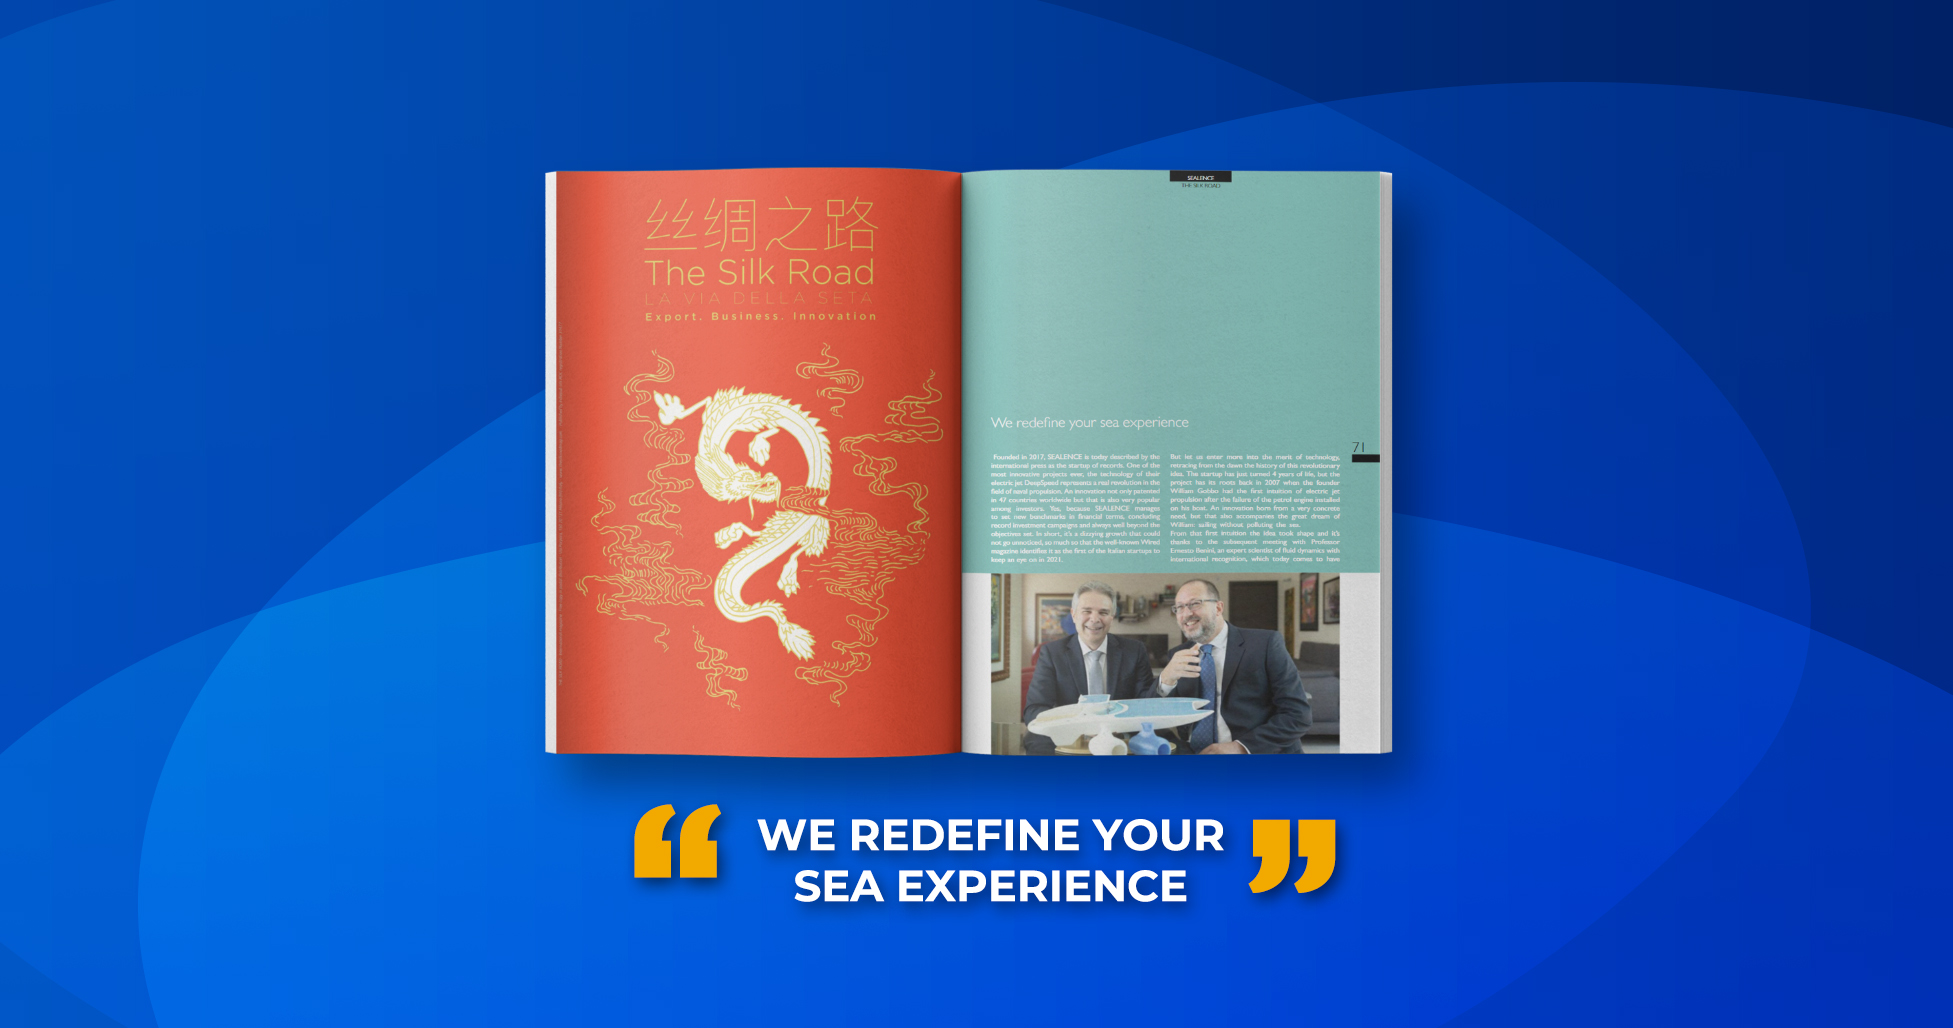 We redefine your sea experience